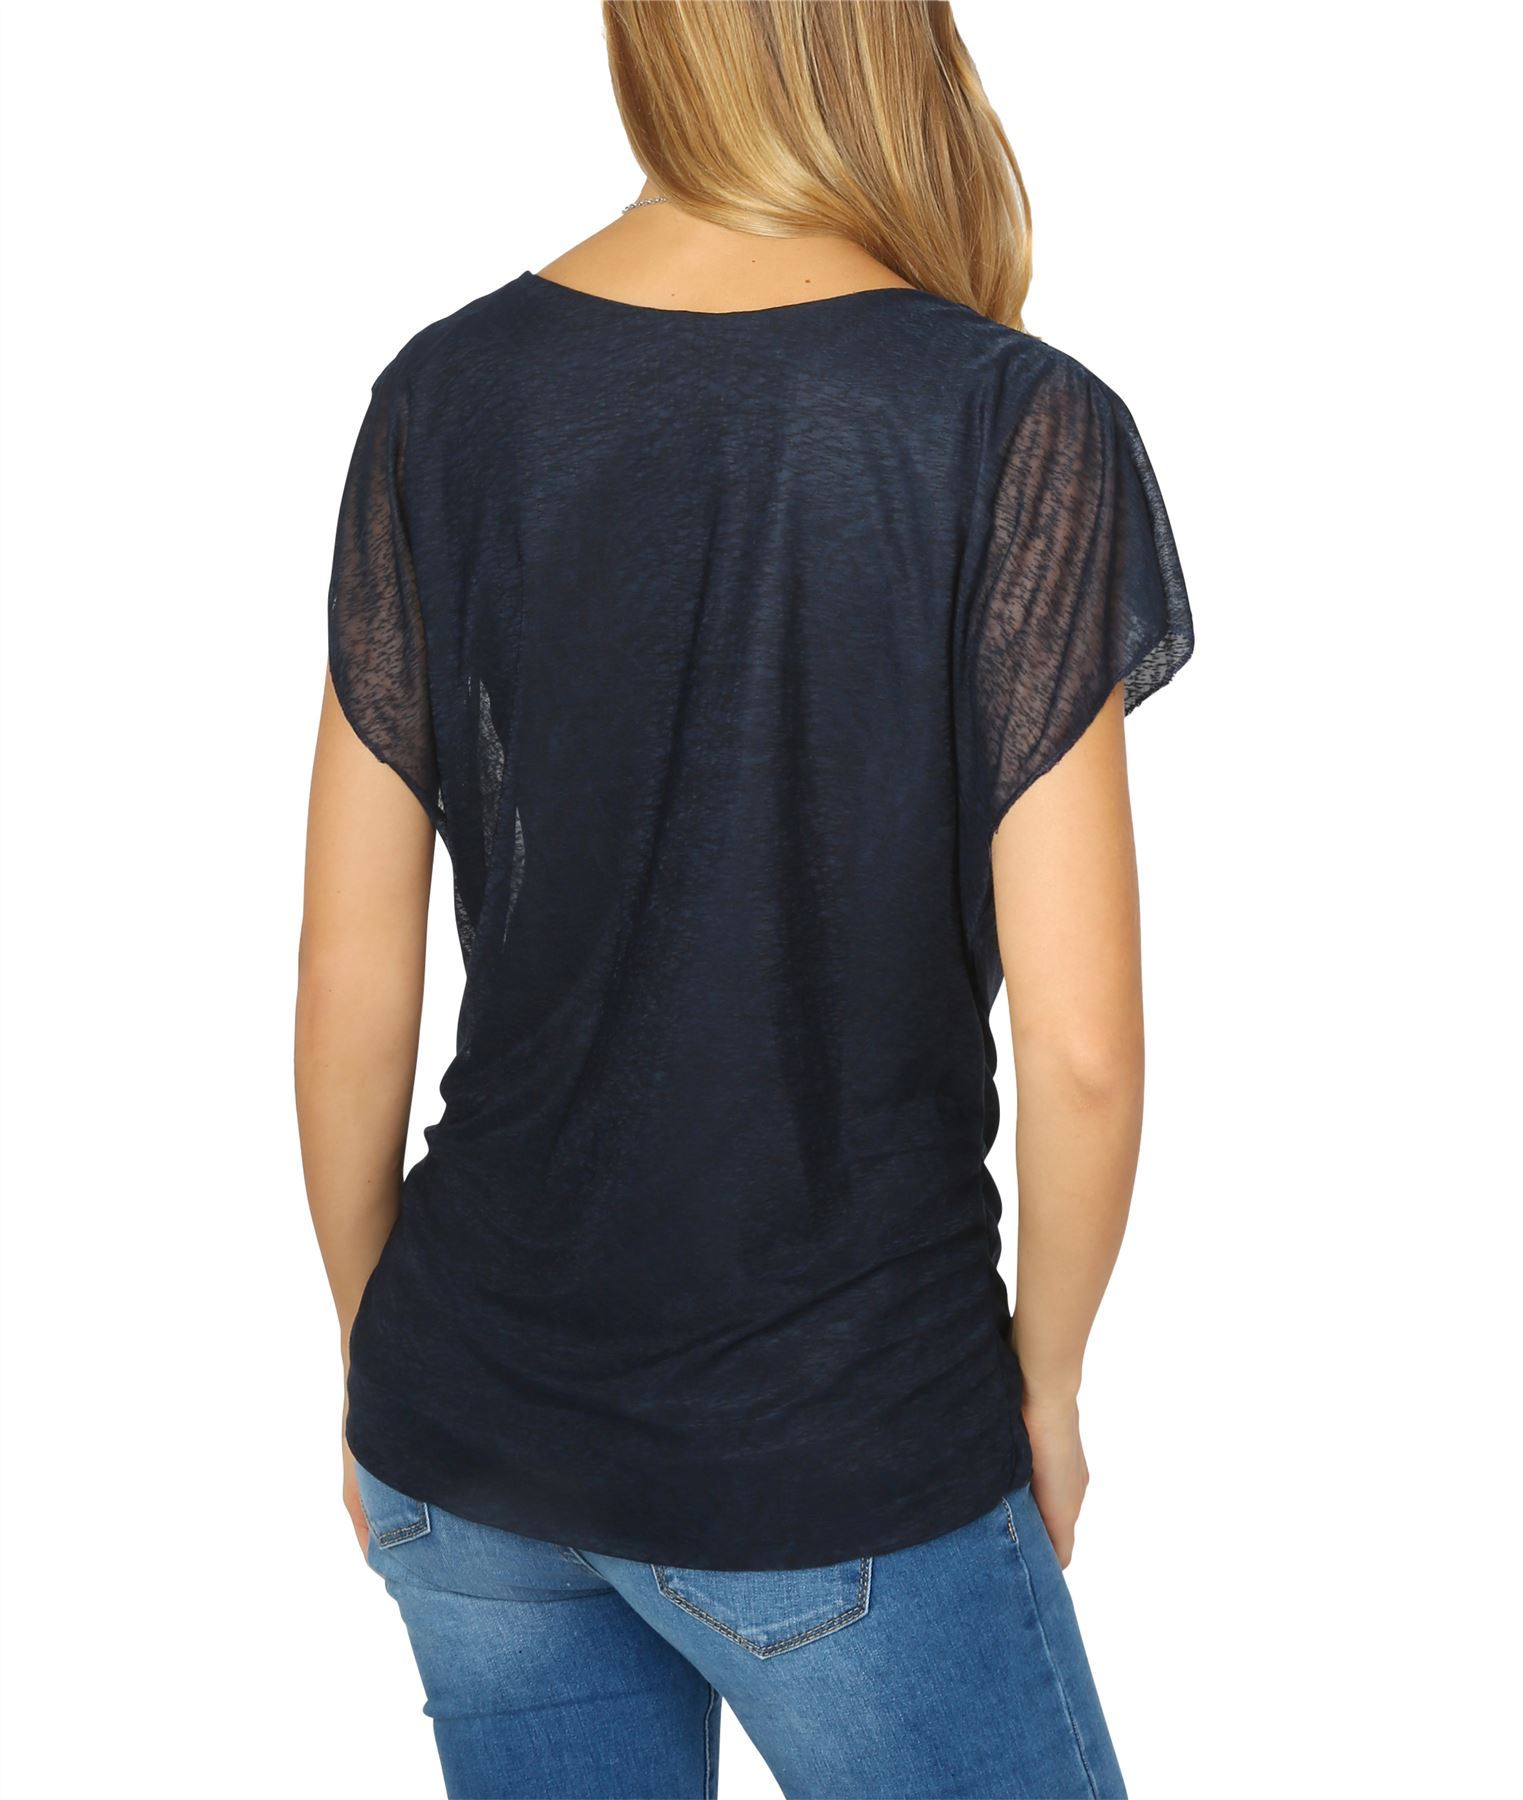 Womens-Ladies-Loose-Drape-T-Shirt-Pleated-Cowl-Neck-Top-Mesh-Tunic-Blouse-2-in-1 thumbnail 7